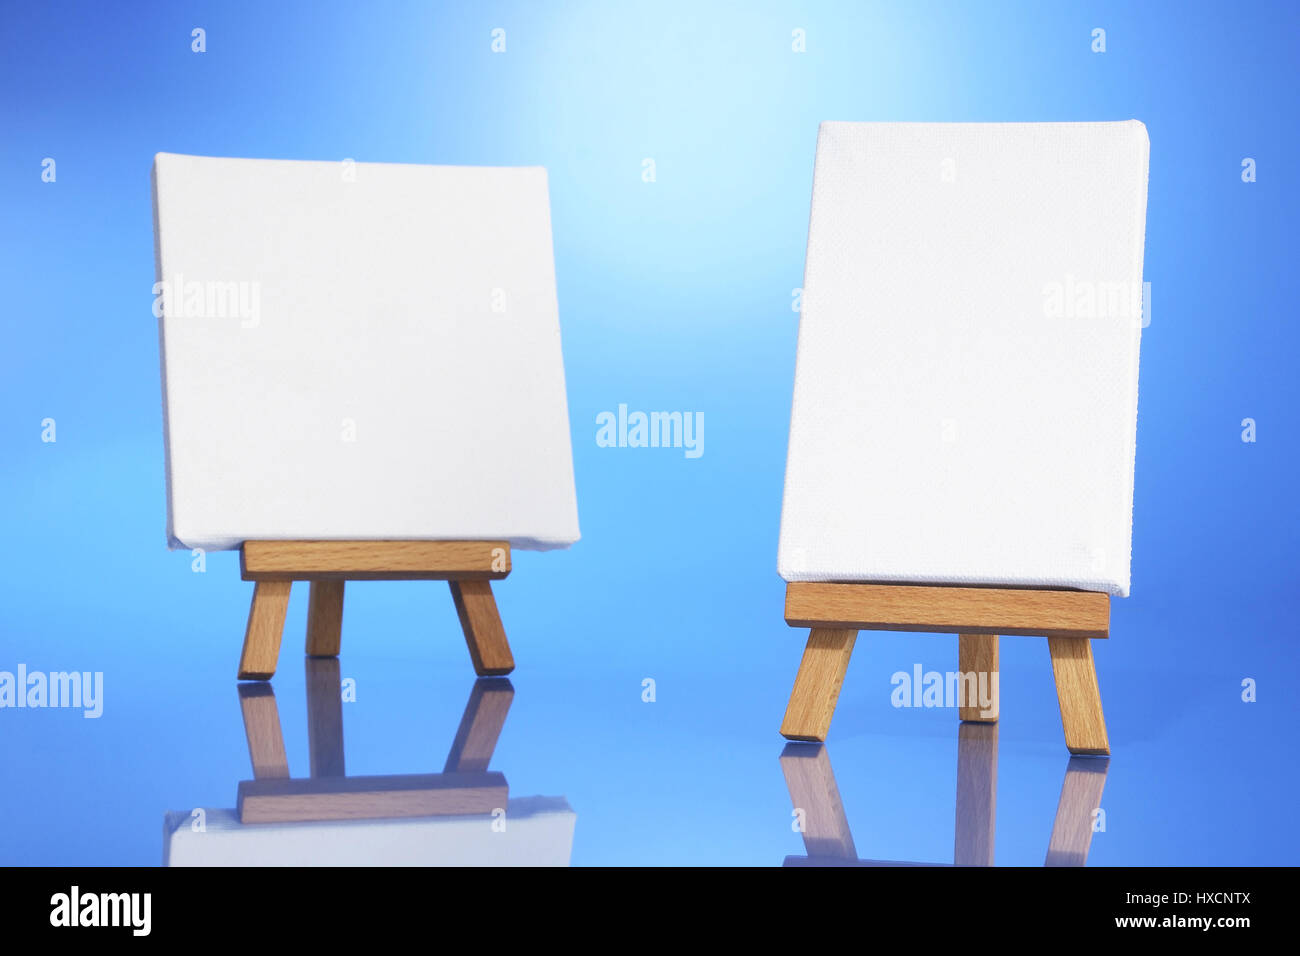 Easel with canvas, Staffelei mit Leinwand - Stock Image